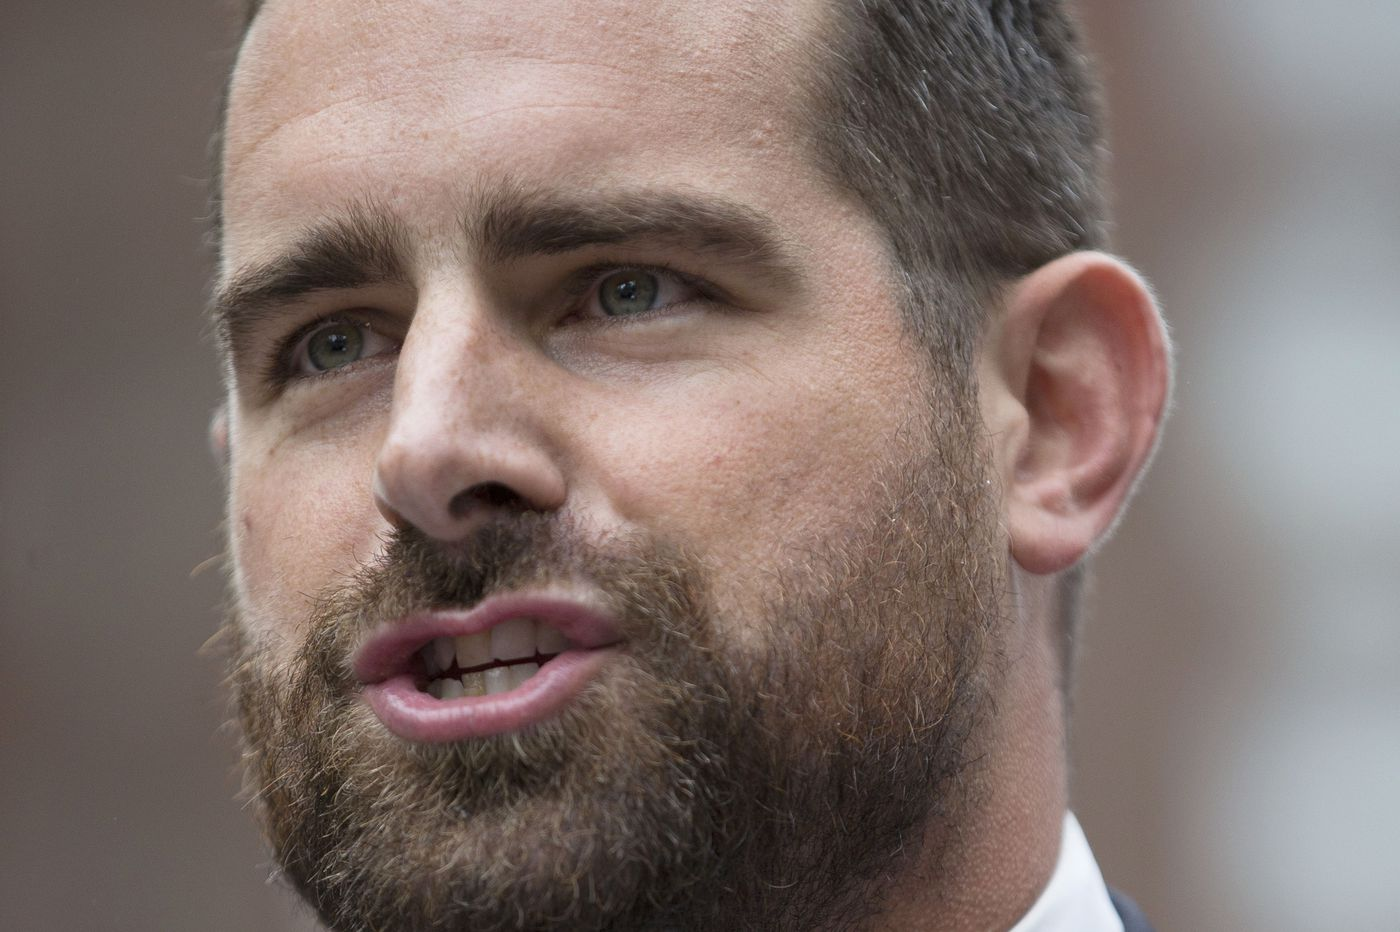 Pa. House Republicans ask Dems to 'address' Rep. Brian Sims' social media flap